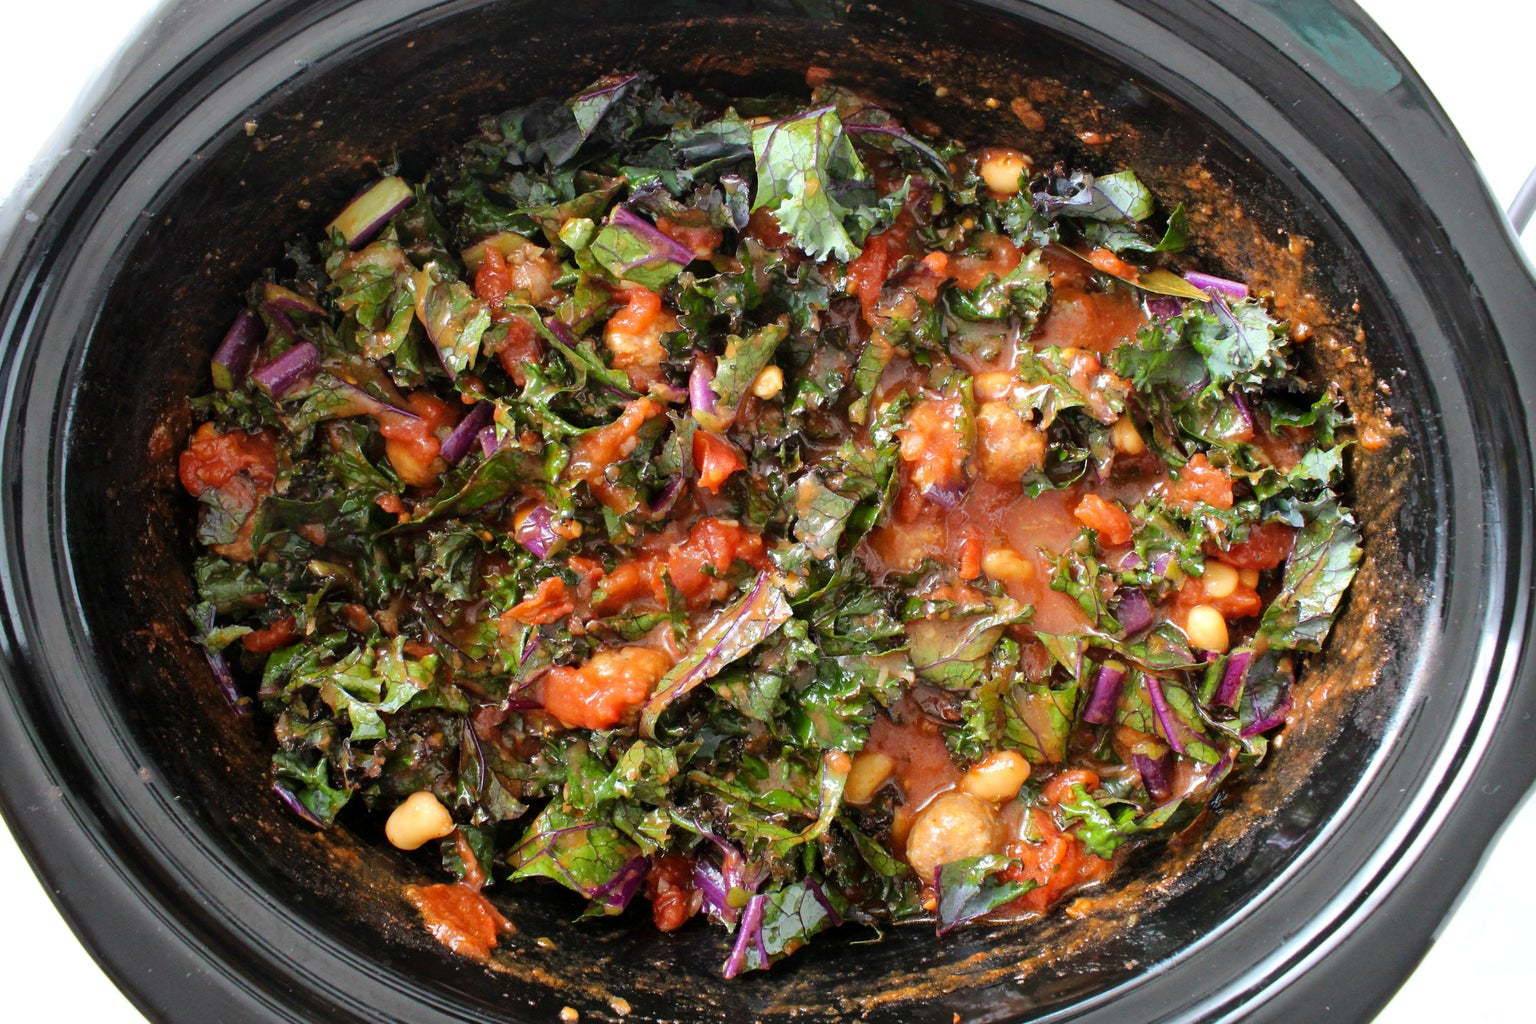 Add the Kale and Keep Cooking